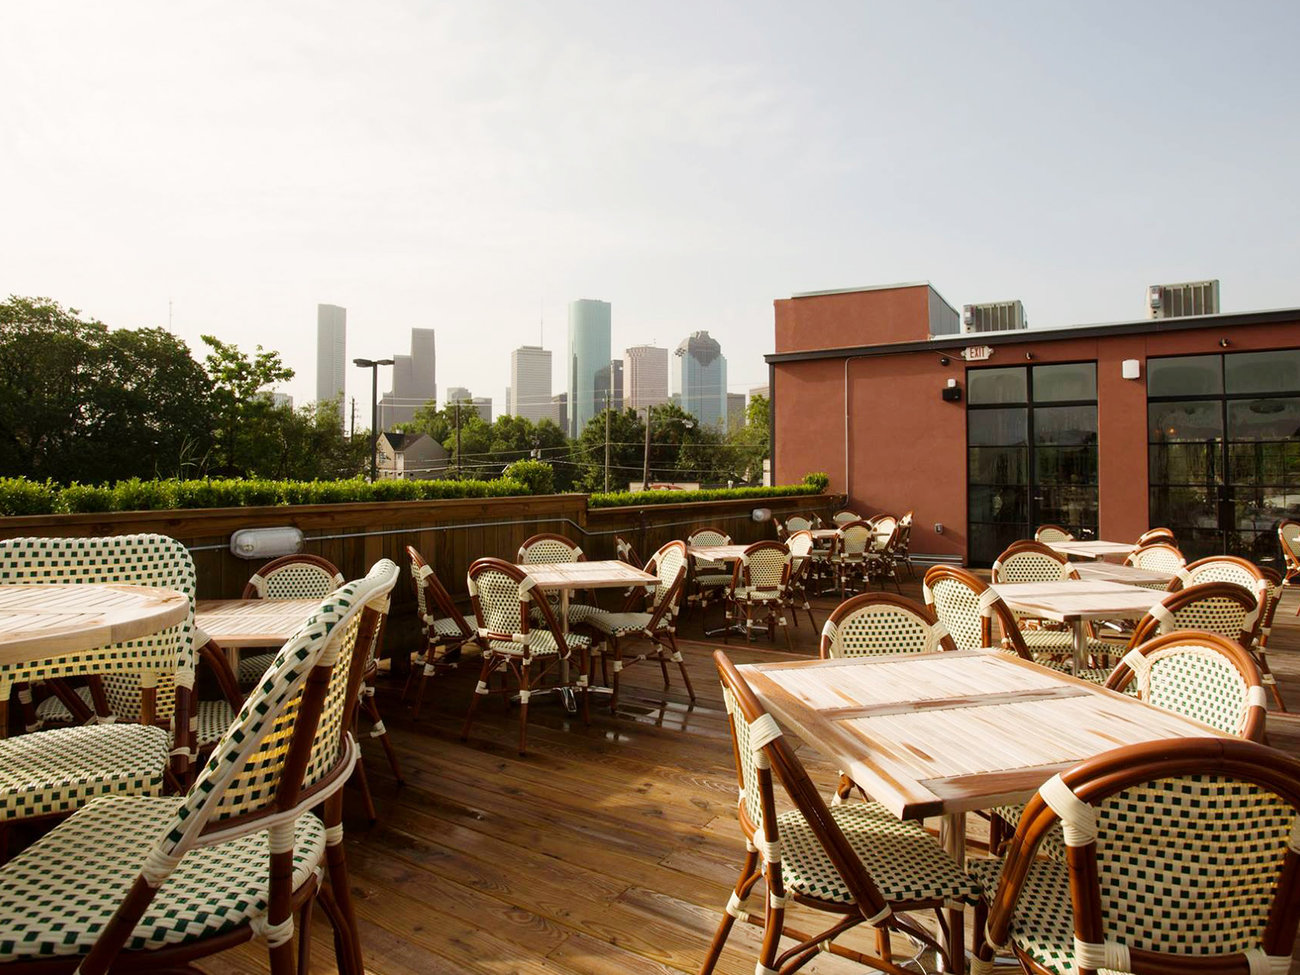 B&B Butchers & Restaurant in Houston